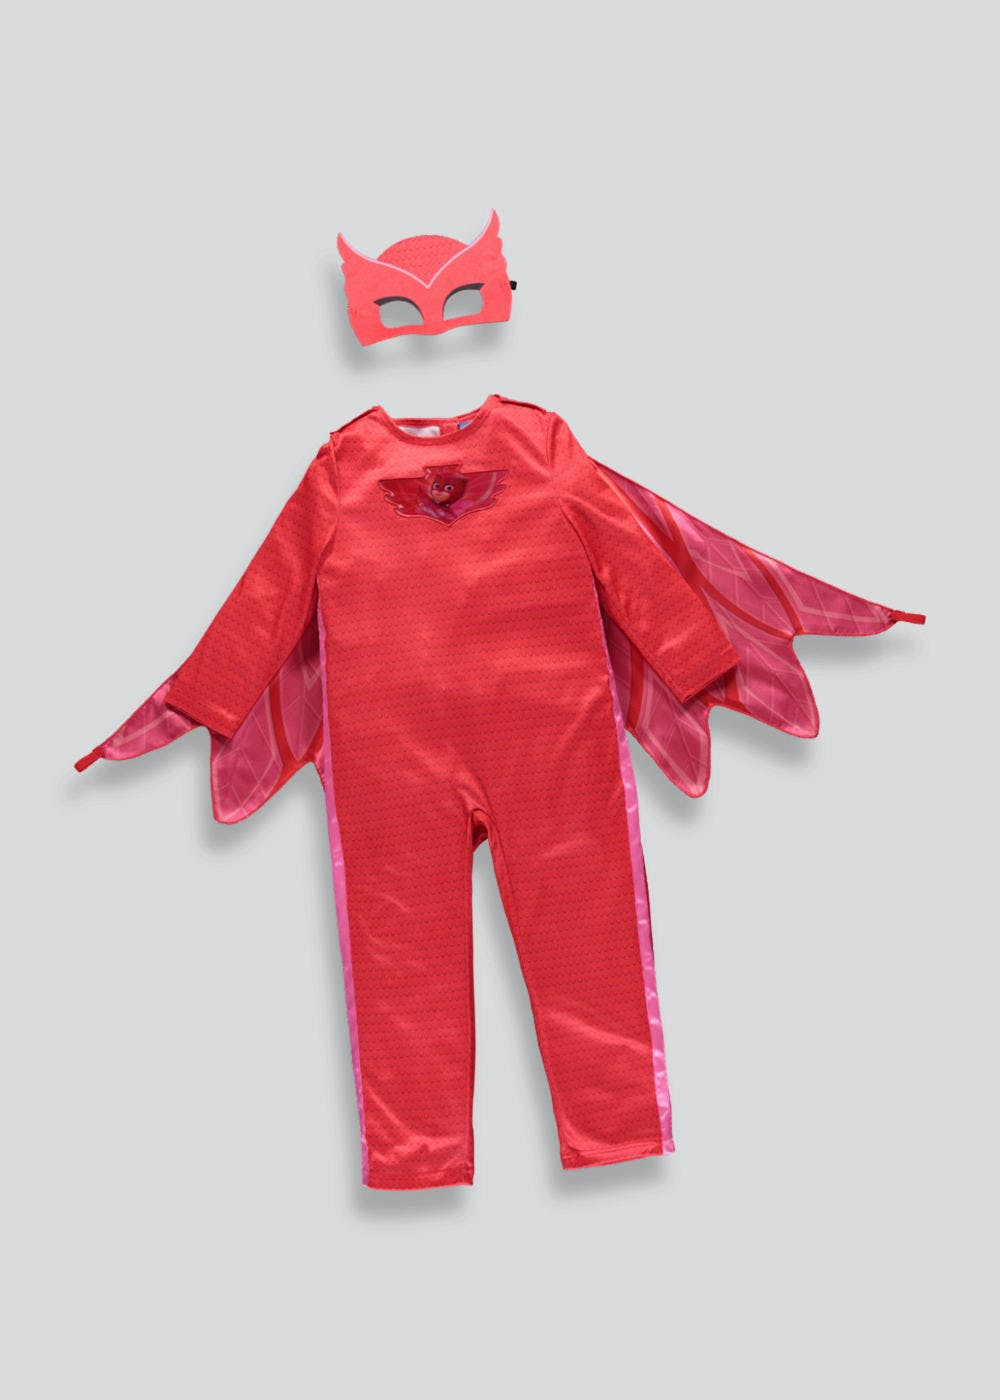 Kids Pj Masks Owlette Fancy Dress Costume 3 7yrs